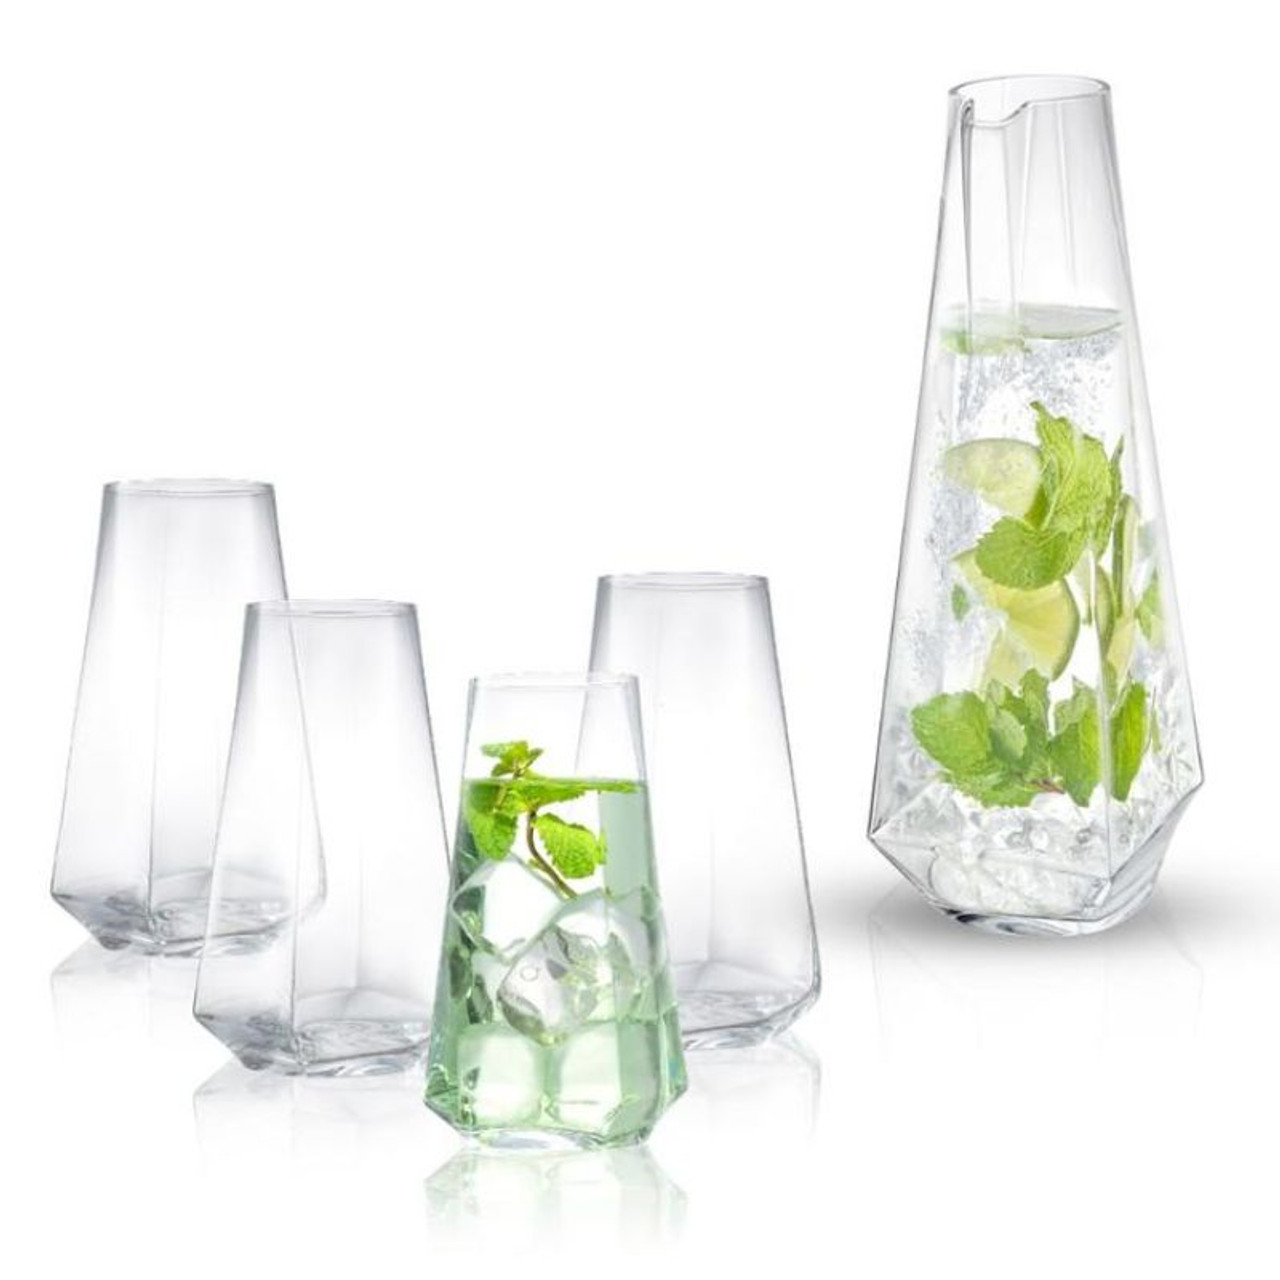 Infiniti Crystal Highball 18oz Glasses and Deluxe Beverage 43oz Pitcher Set